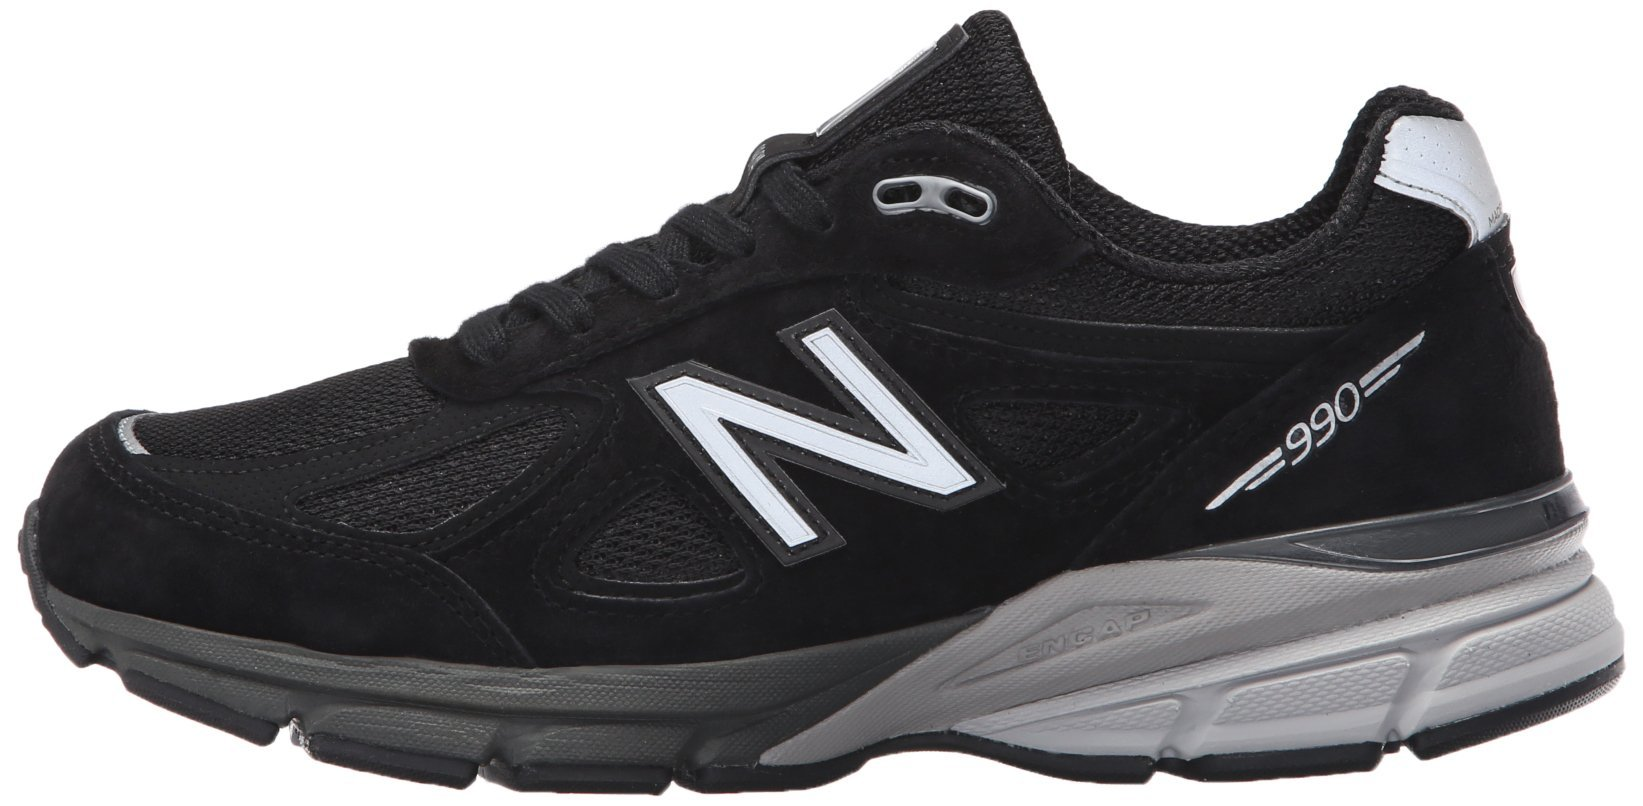 New Balance Women's W990V4 Run Shoe-W, Black/Silver, 9 D US